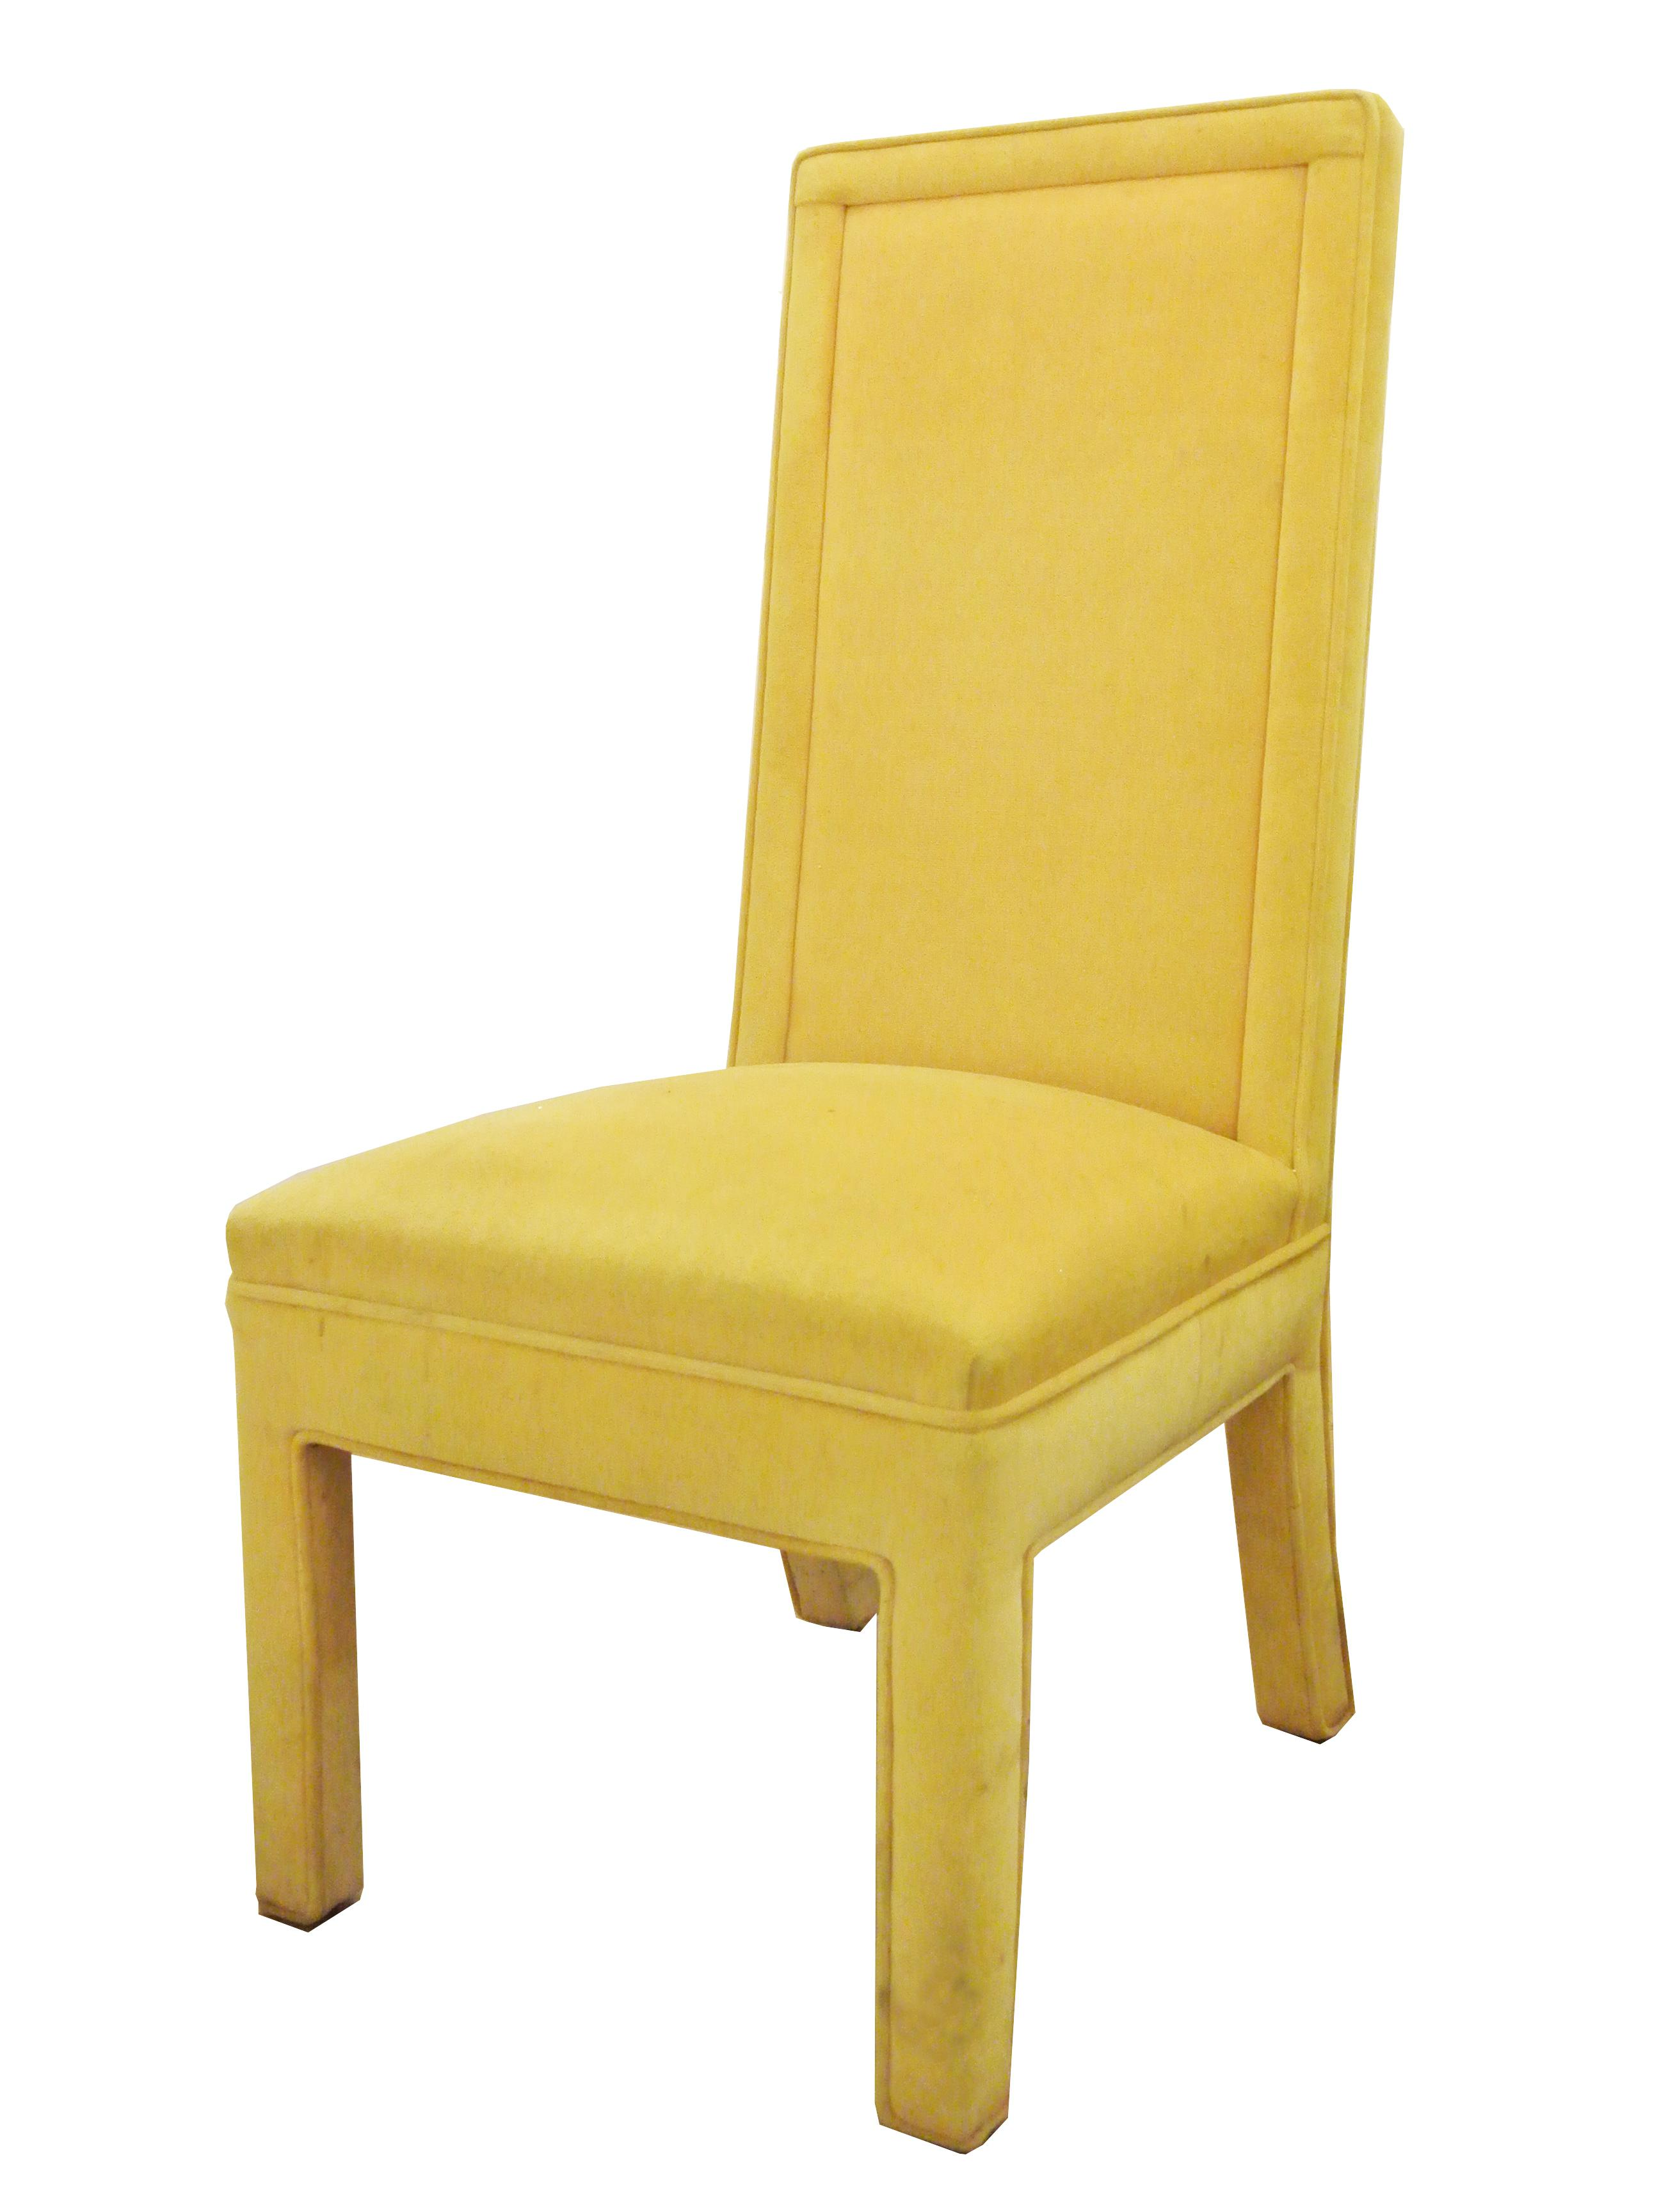 Yellow Faux Mohair Upholstered Parsons Dining Chairs Set  : yellow faux mohair upholstered parsons dining chairs set of 4 9454aspectfitampwidth640ampheight640 from www.chairish.com size 640 x 640 jpeg 20kB